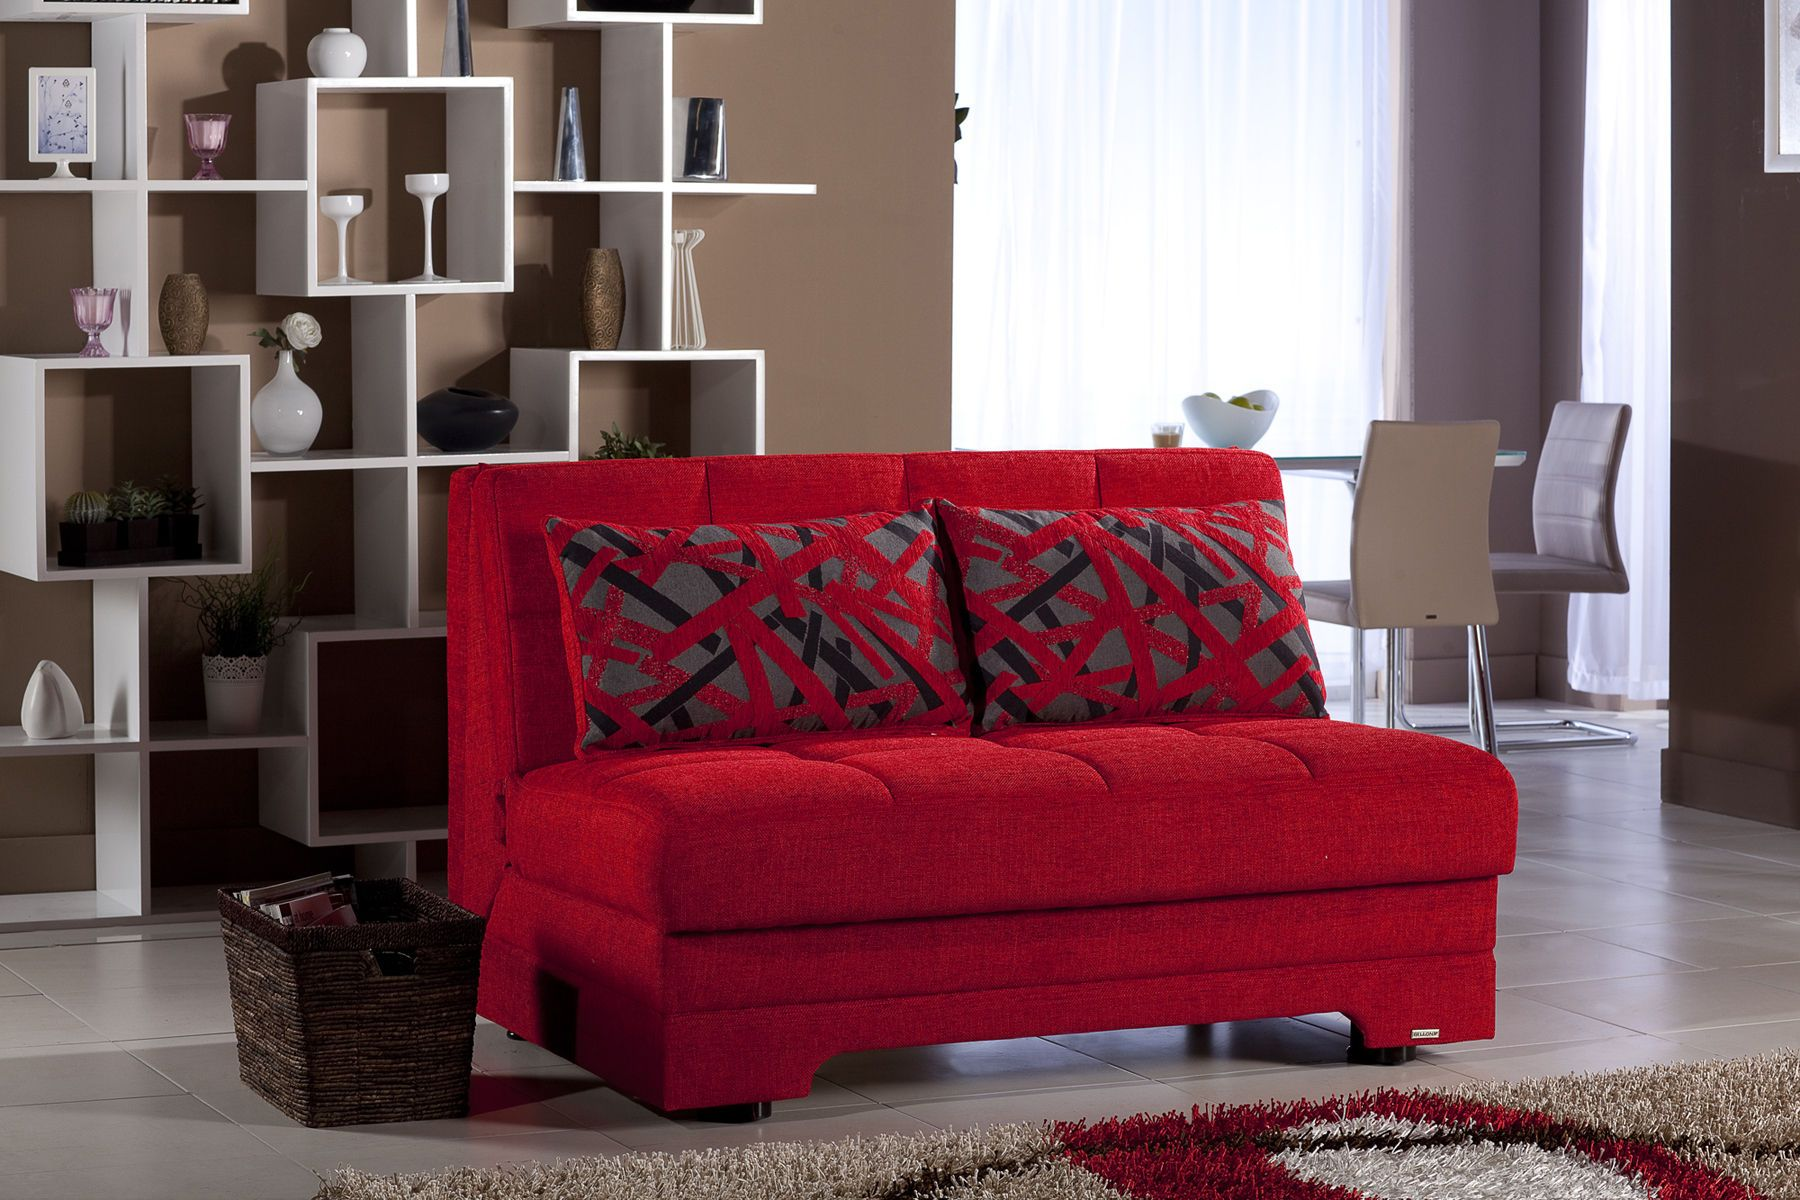 - Twist Story Red Sofa Bed In 2020 Sofa Bed For Small Spaces, Love